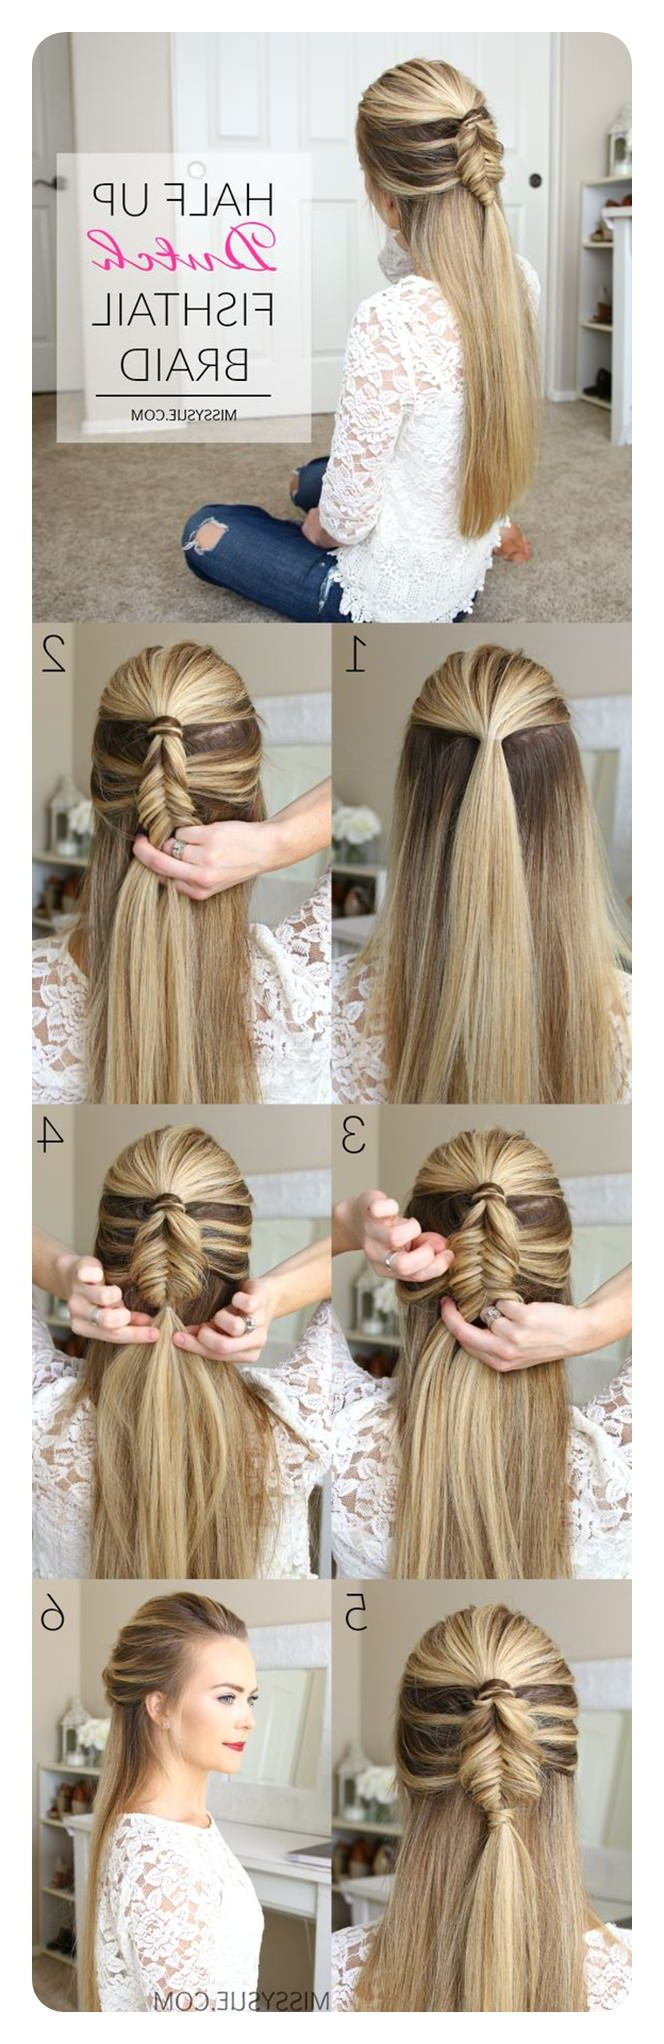 104 Fishtail Braids Hairstyles That Turn Heads Intended For Well Liked Thick Two Side Fishtails Braid Hairstyles (View 5 of 20)